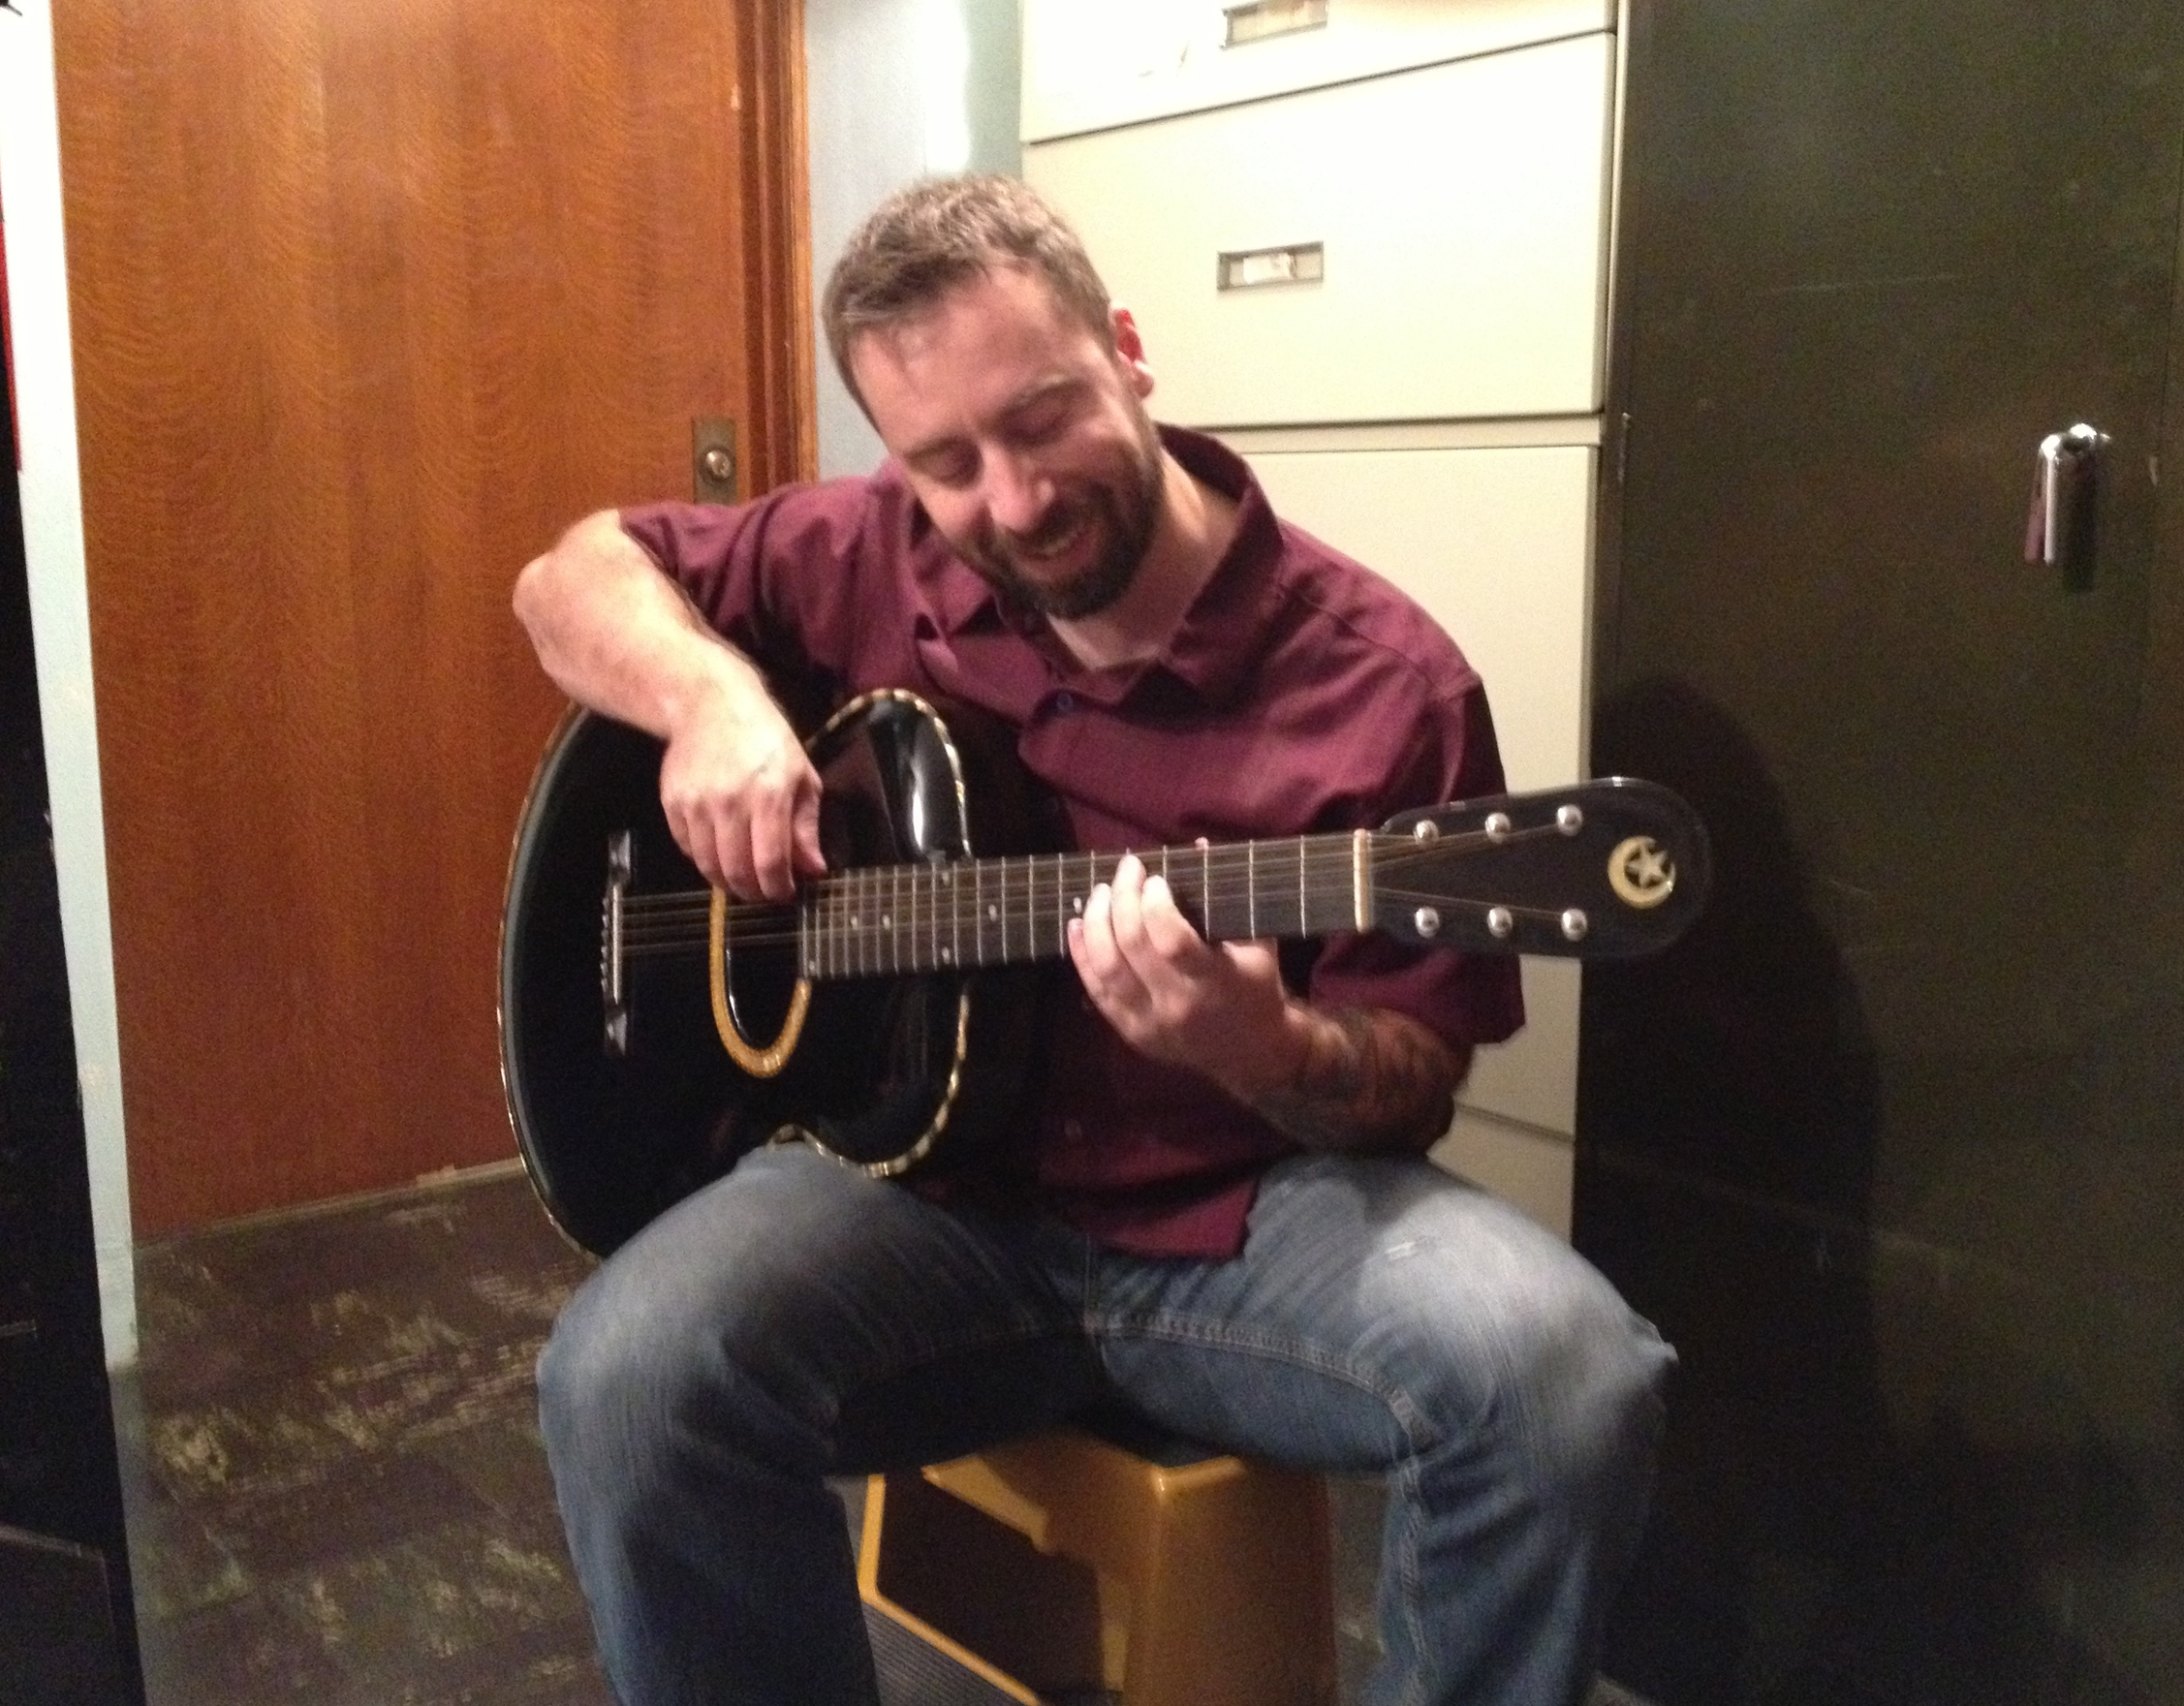 Jamming on an Orville Gibson